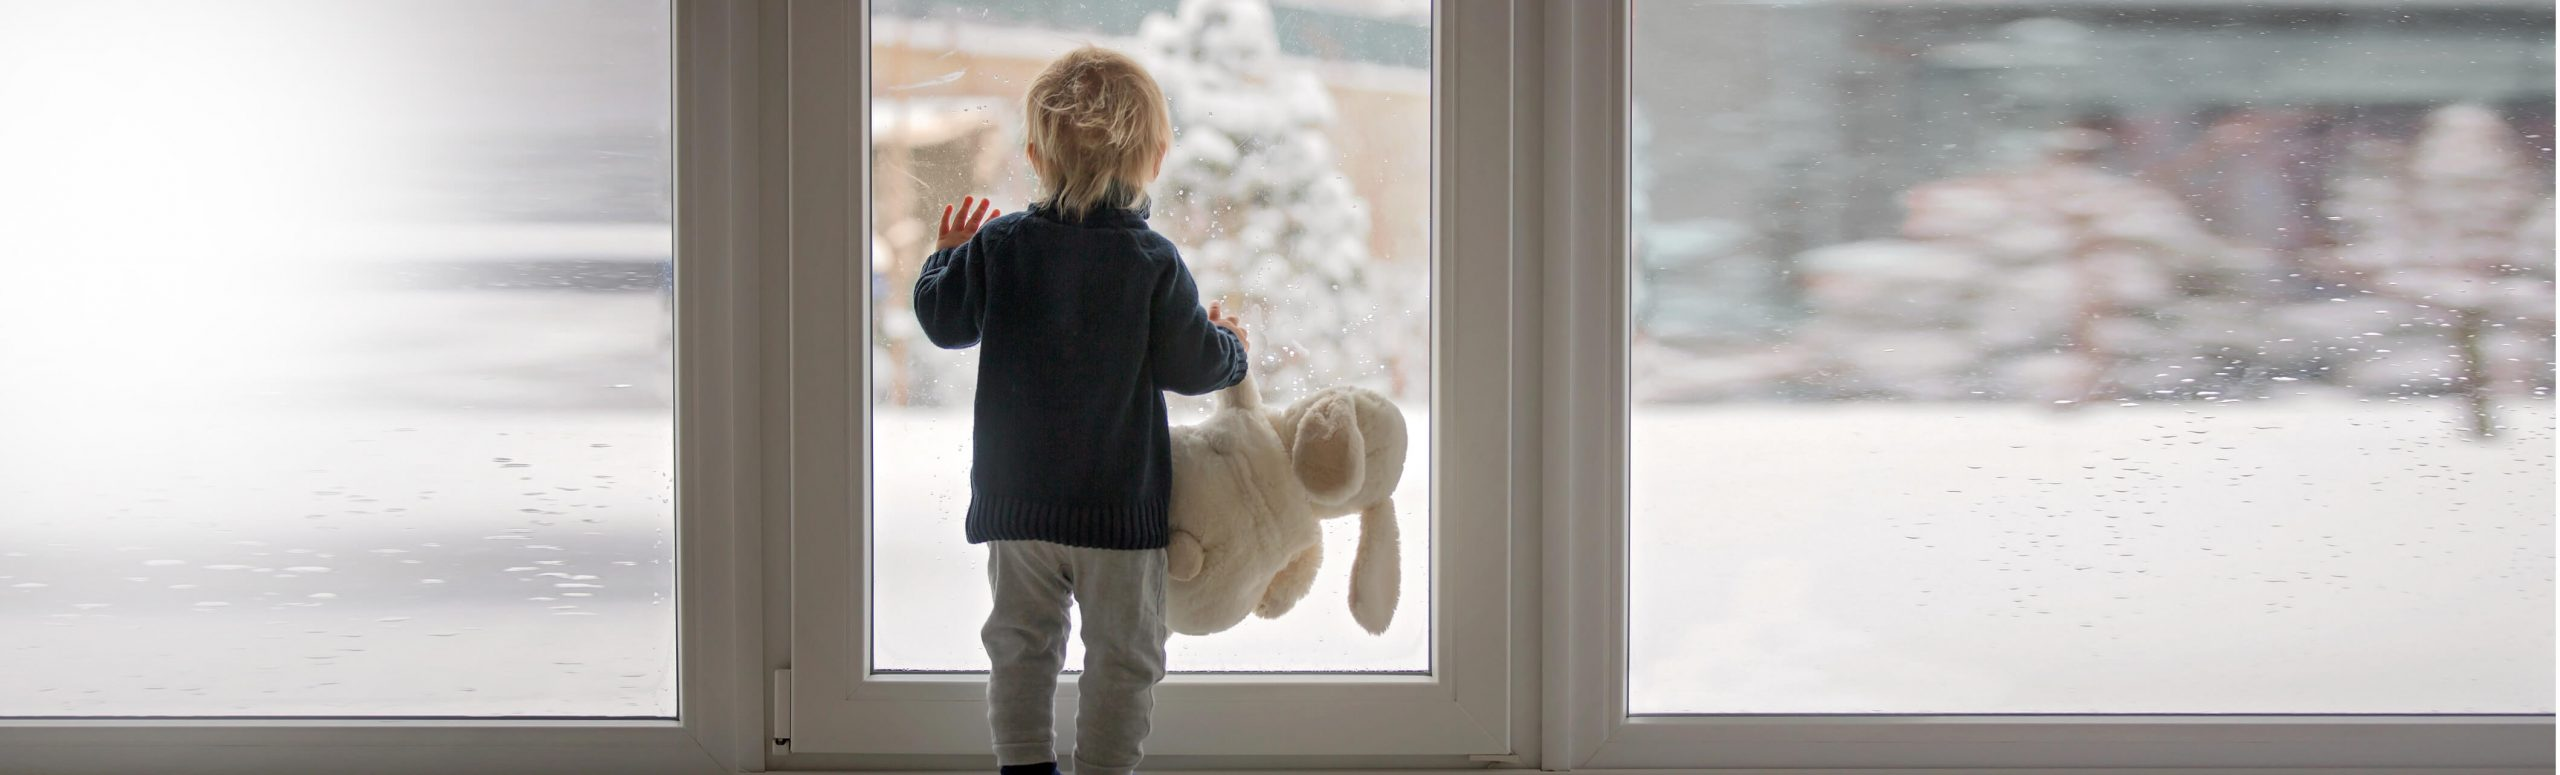 toddler holding teddy bear looks out window at snow